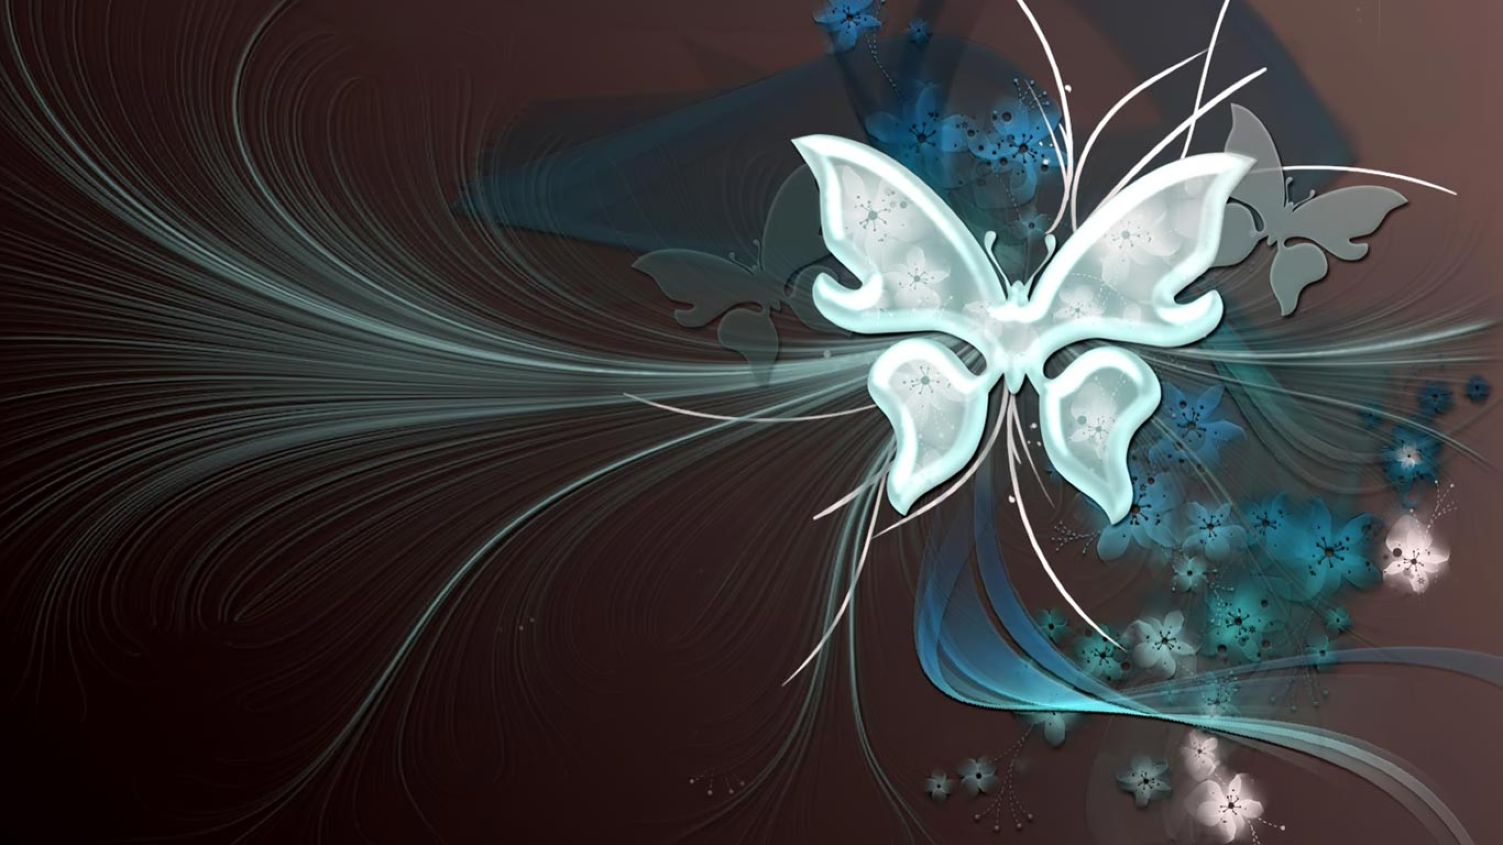 3d butterfly hd for laptop 1366x768 wallpaper: desktop hd wallpaper